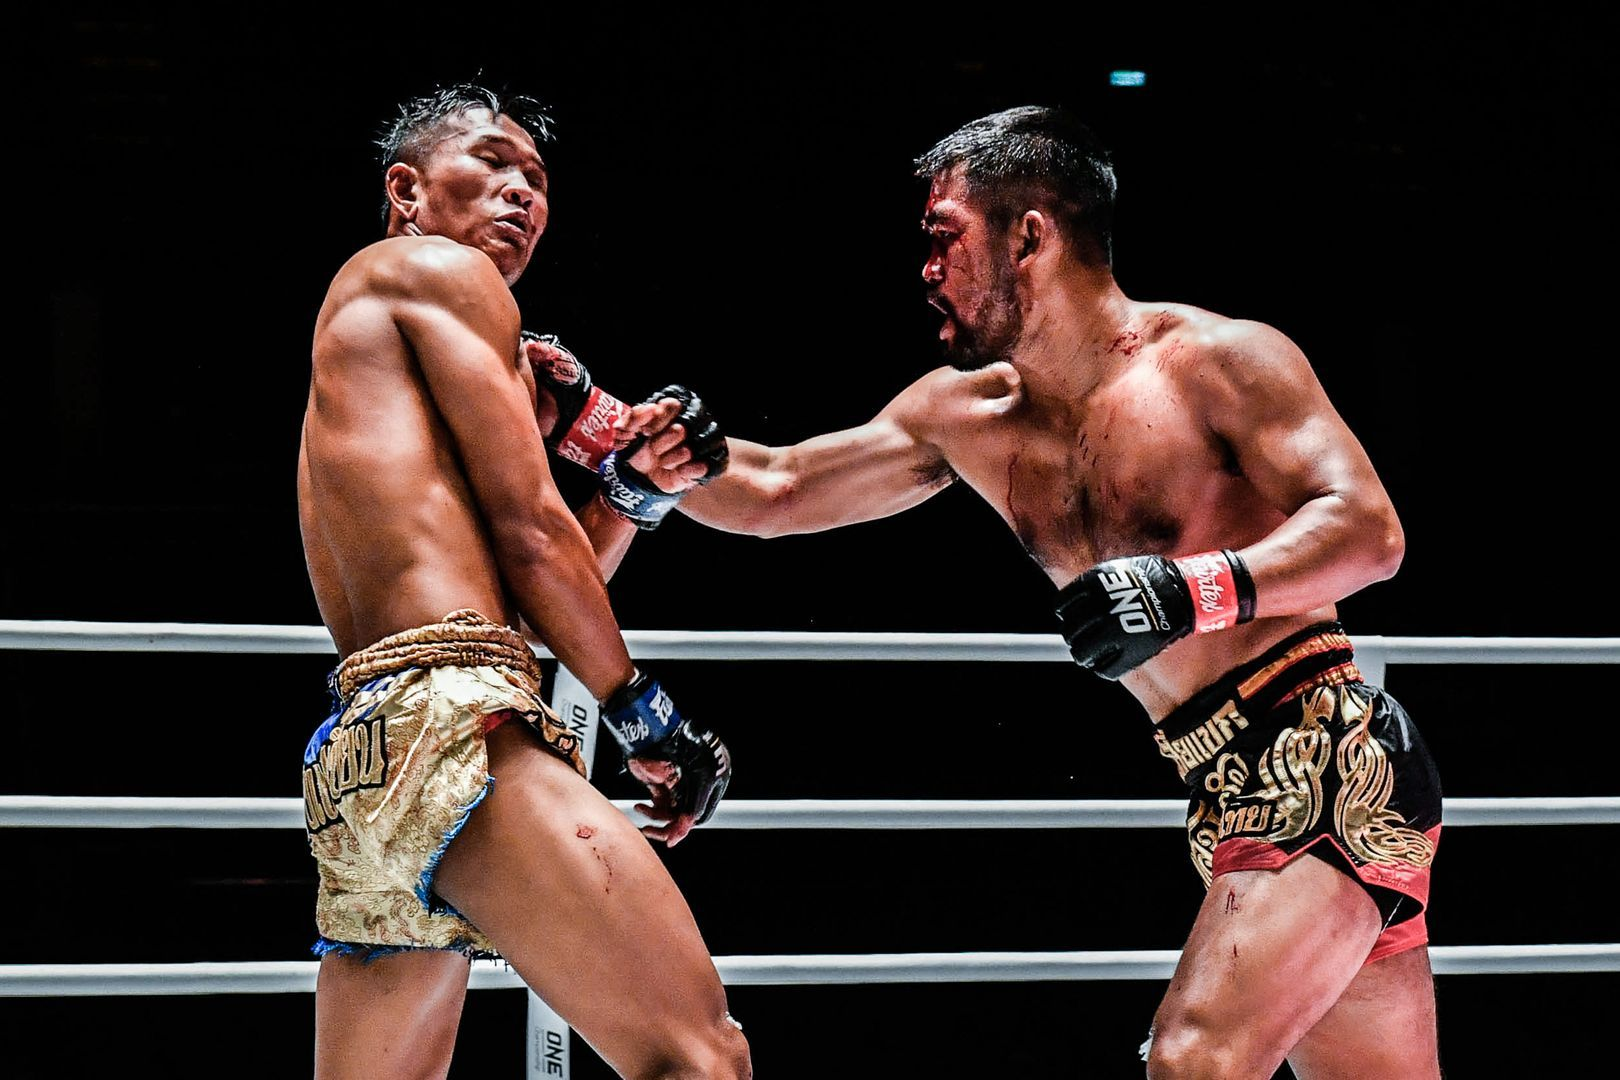 Muay Thai fighter Roldek winds up his punch on Kulabdam